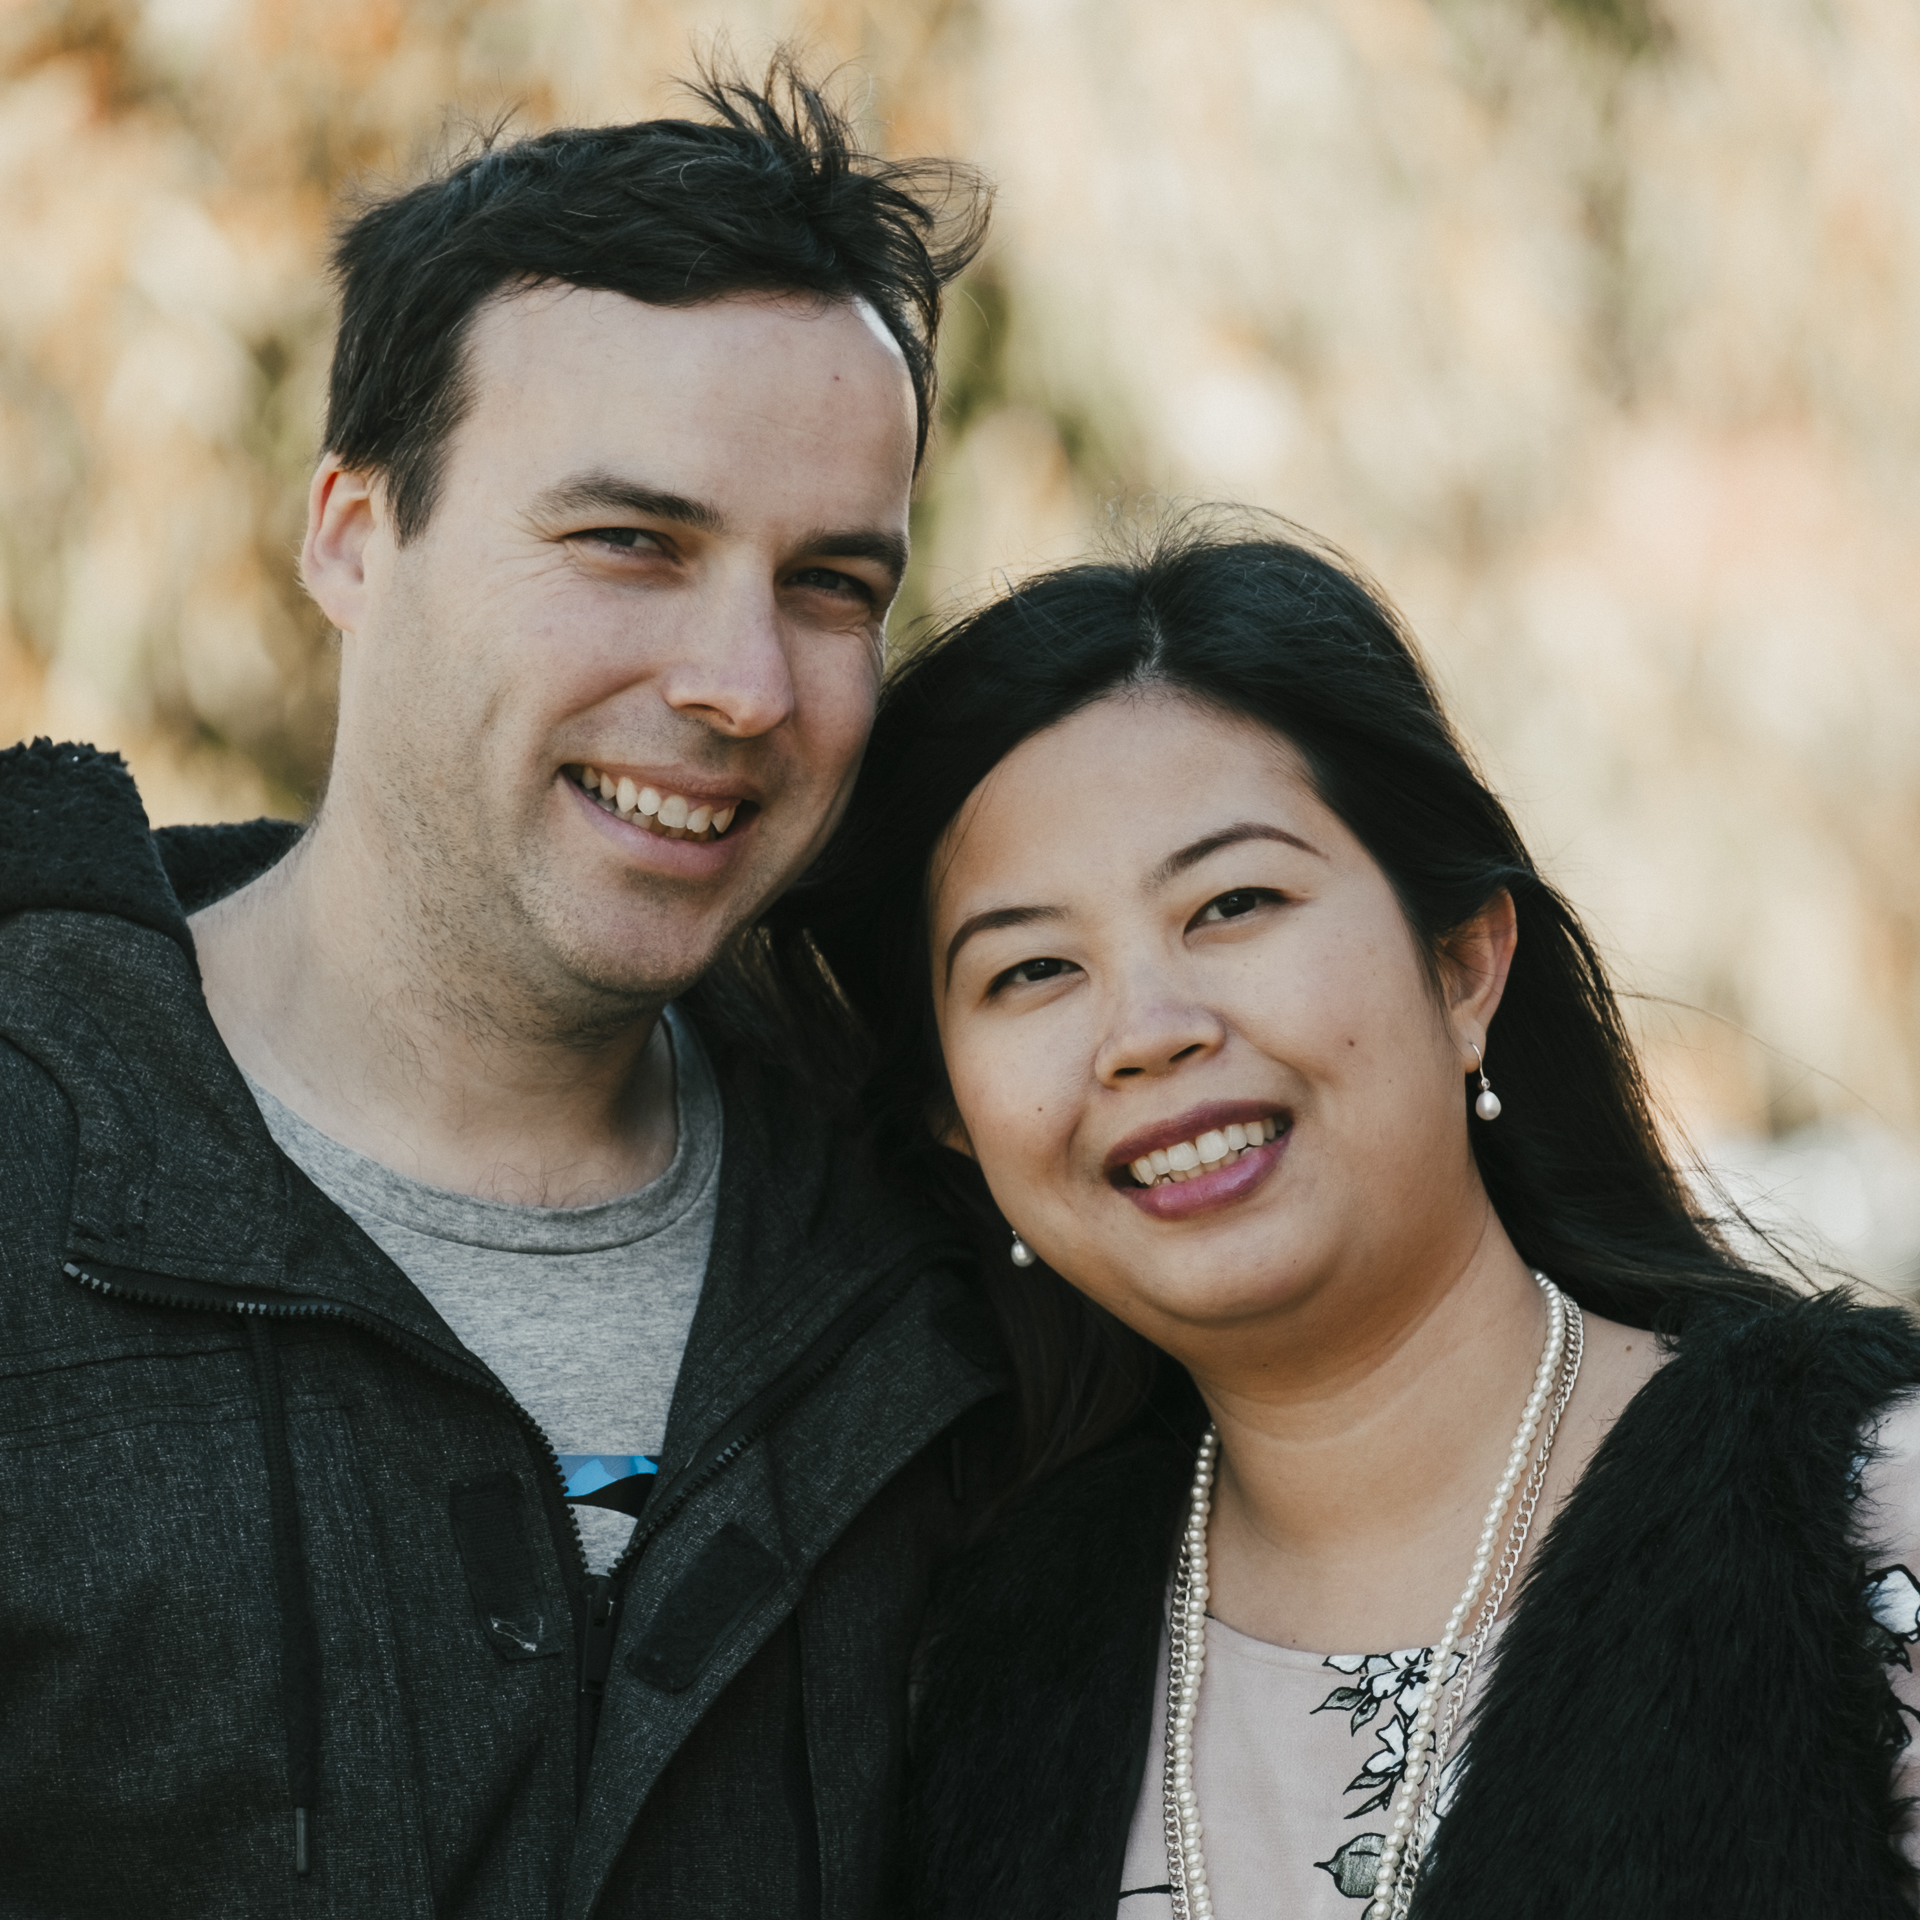 Matt & Christie Berry   Matt & Christie lead one of our Connect Groups that is connecting with many from Warrnambool's growing, Asian community.  Having both grown up in different parts of Indonesia, they are culturally rich and exceptionally hospitable…you'll never go hungry or asking questions from their Connect Group.  Matt and Christie serve in many areas of the church including on our preaching team.